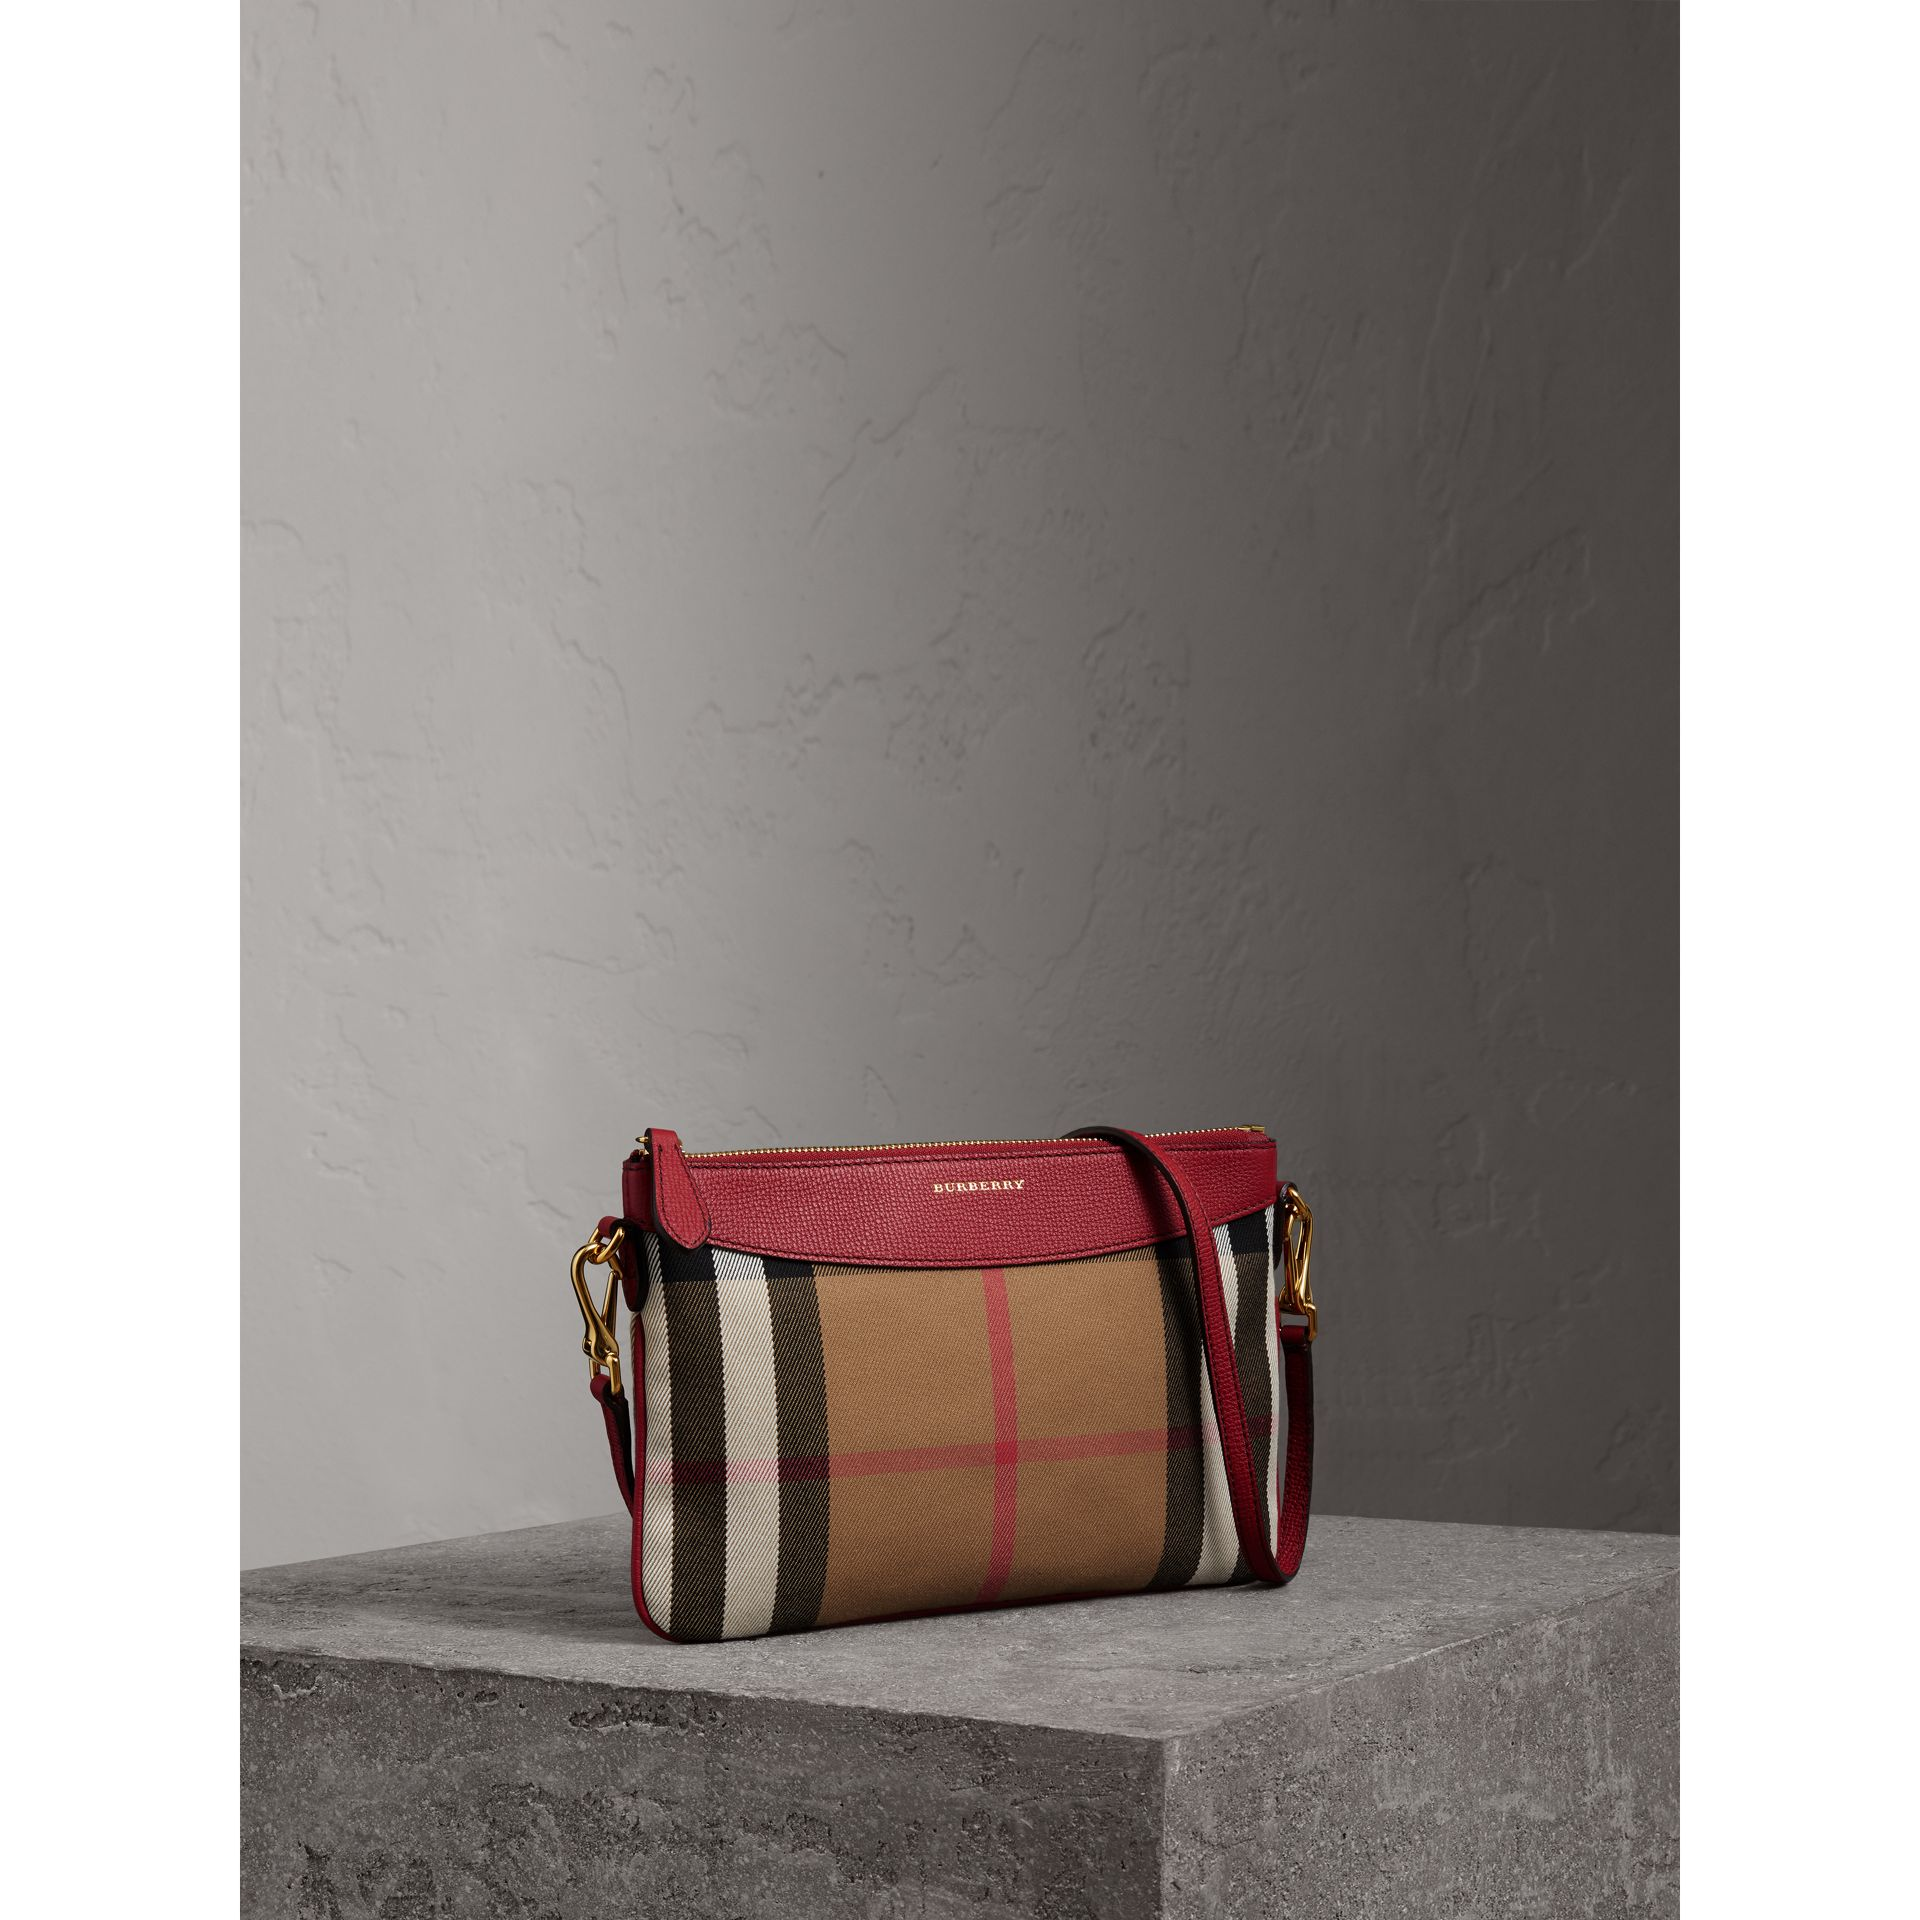 House Check and Leather Clutch Bag in Military Red - Women | Burberry Australia - gallery image 5